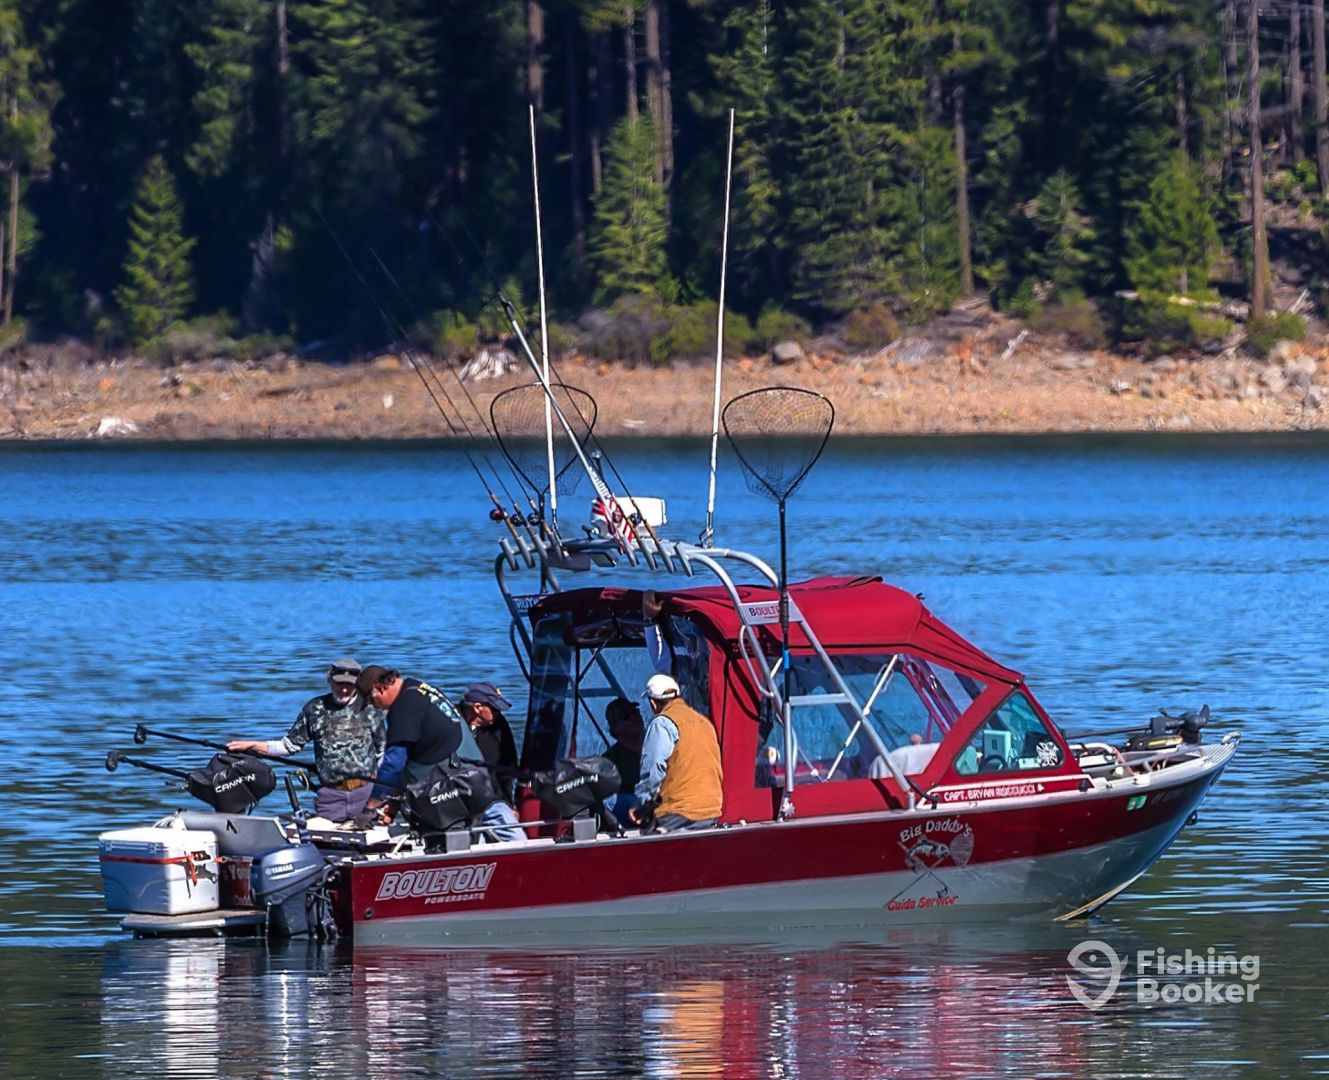 Big Daddy's Guide Service – Lake Almanor